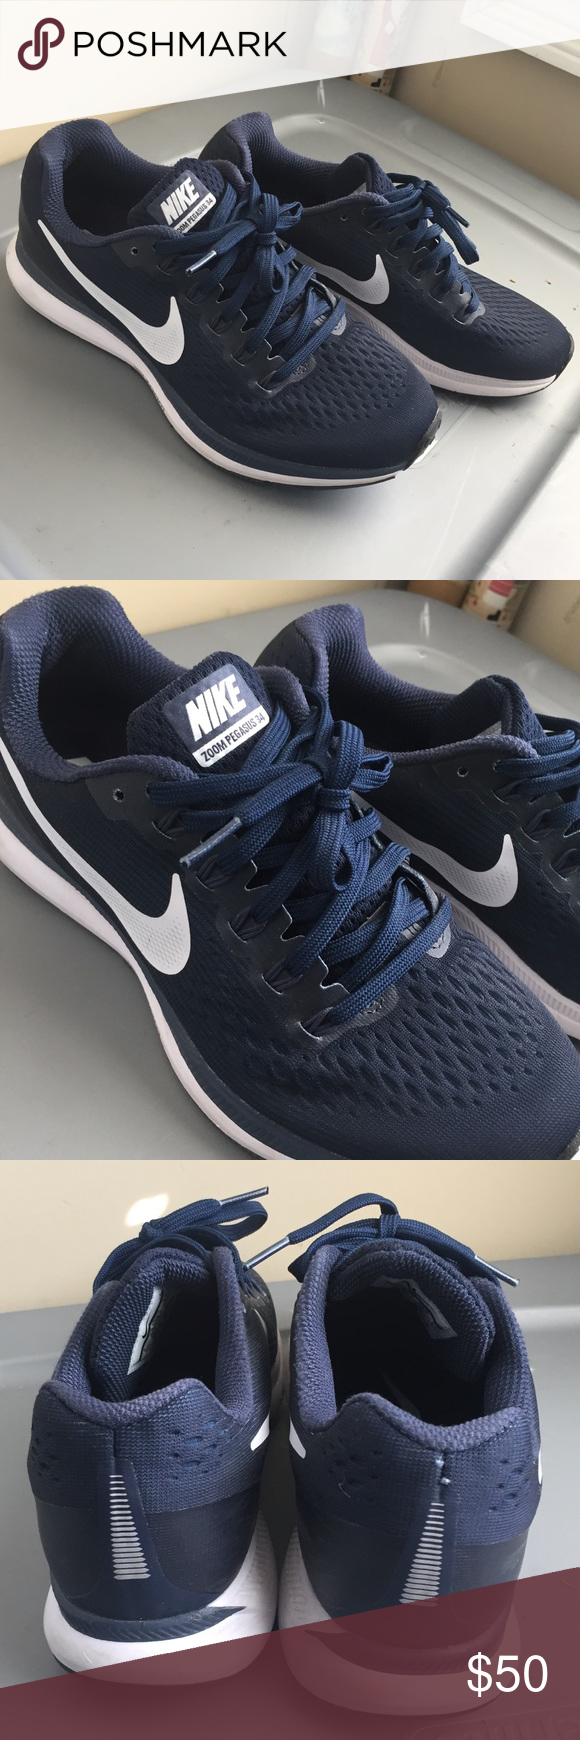 14a620eb385ce Nike Zoom Pegasus NAVY BLUE Size 6 men 7.5 women Nike Zoom Pegasus NAVY BLUE  Size 6 men Only worn a few times I wanted a pair of all navy shoes so I ...